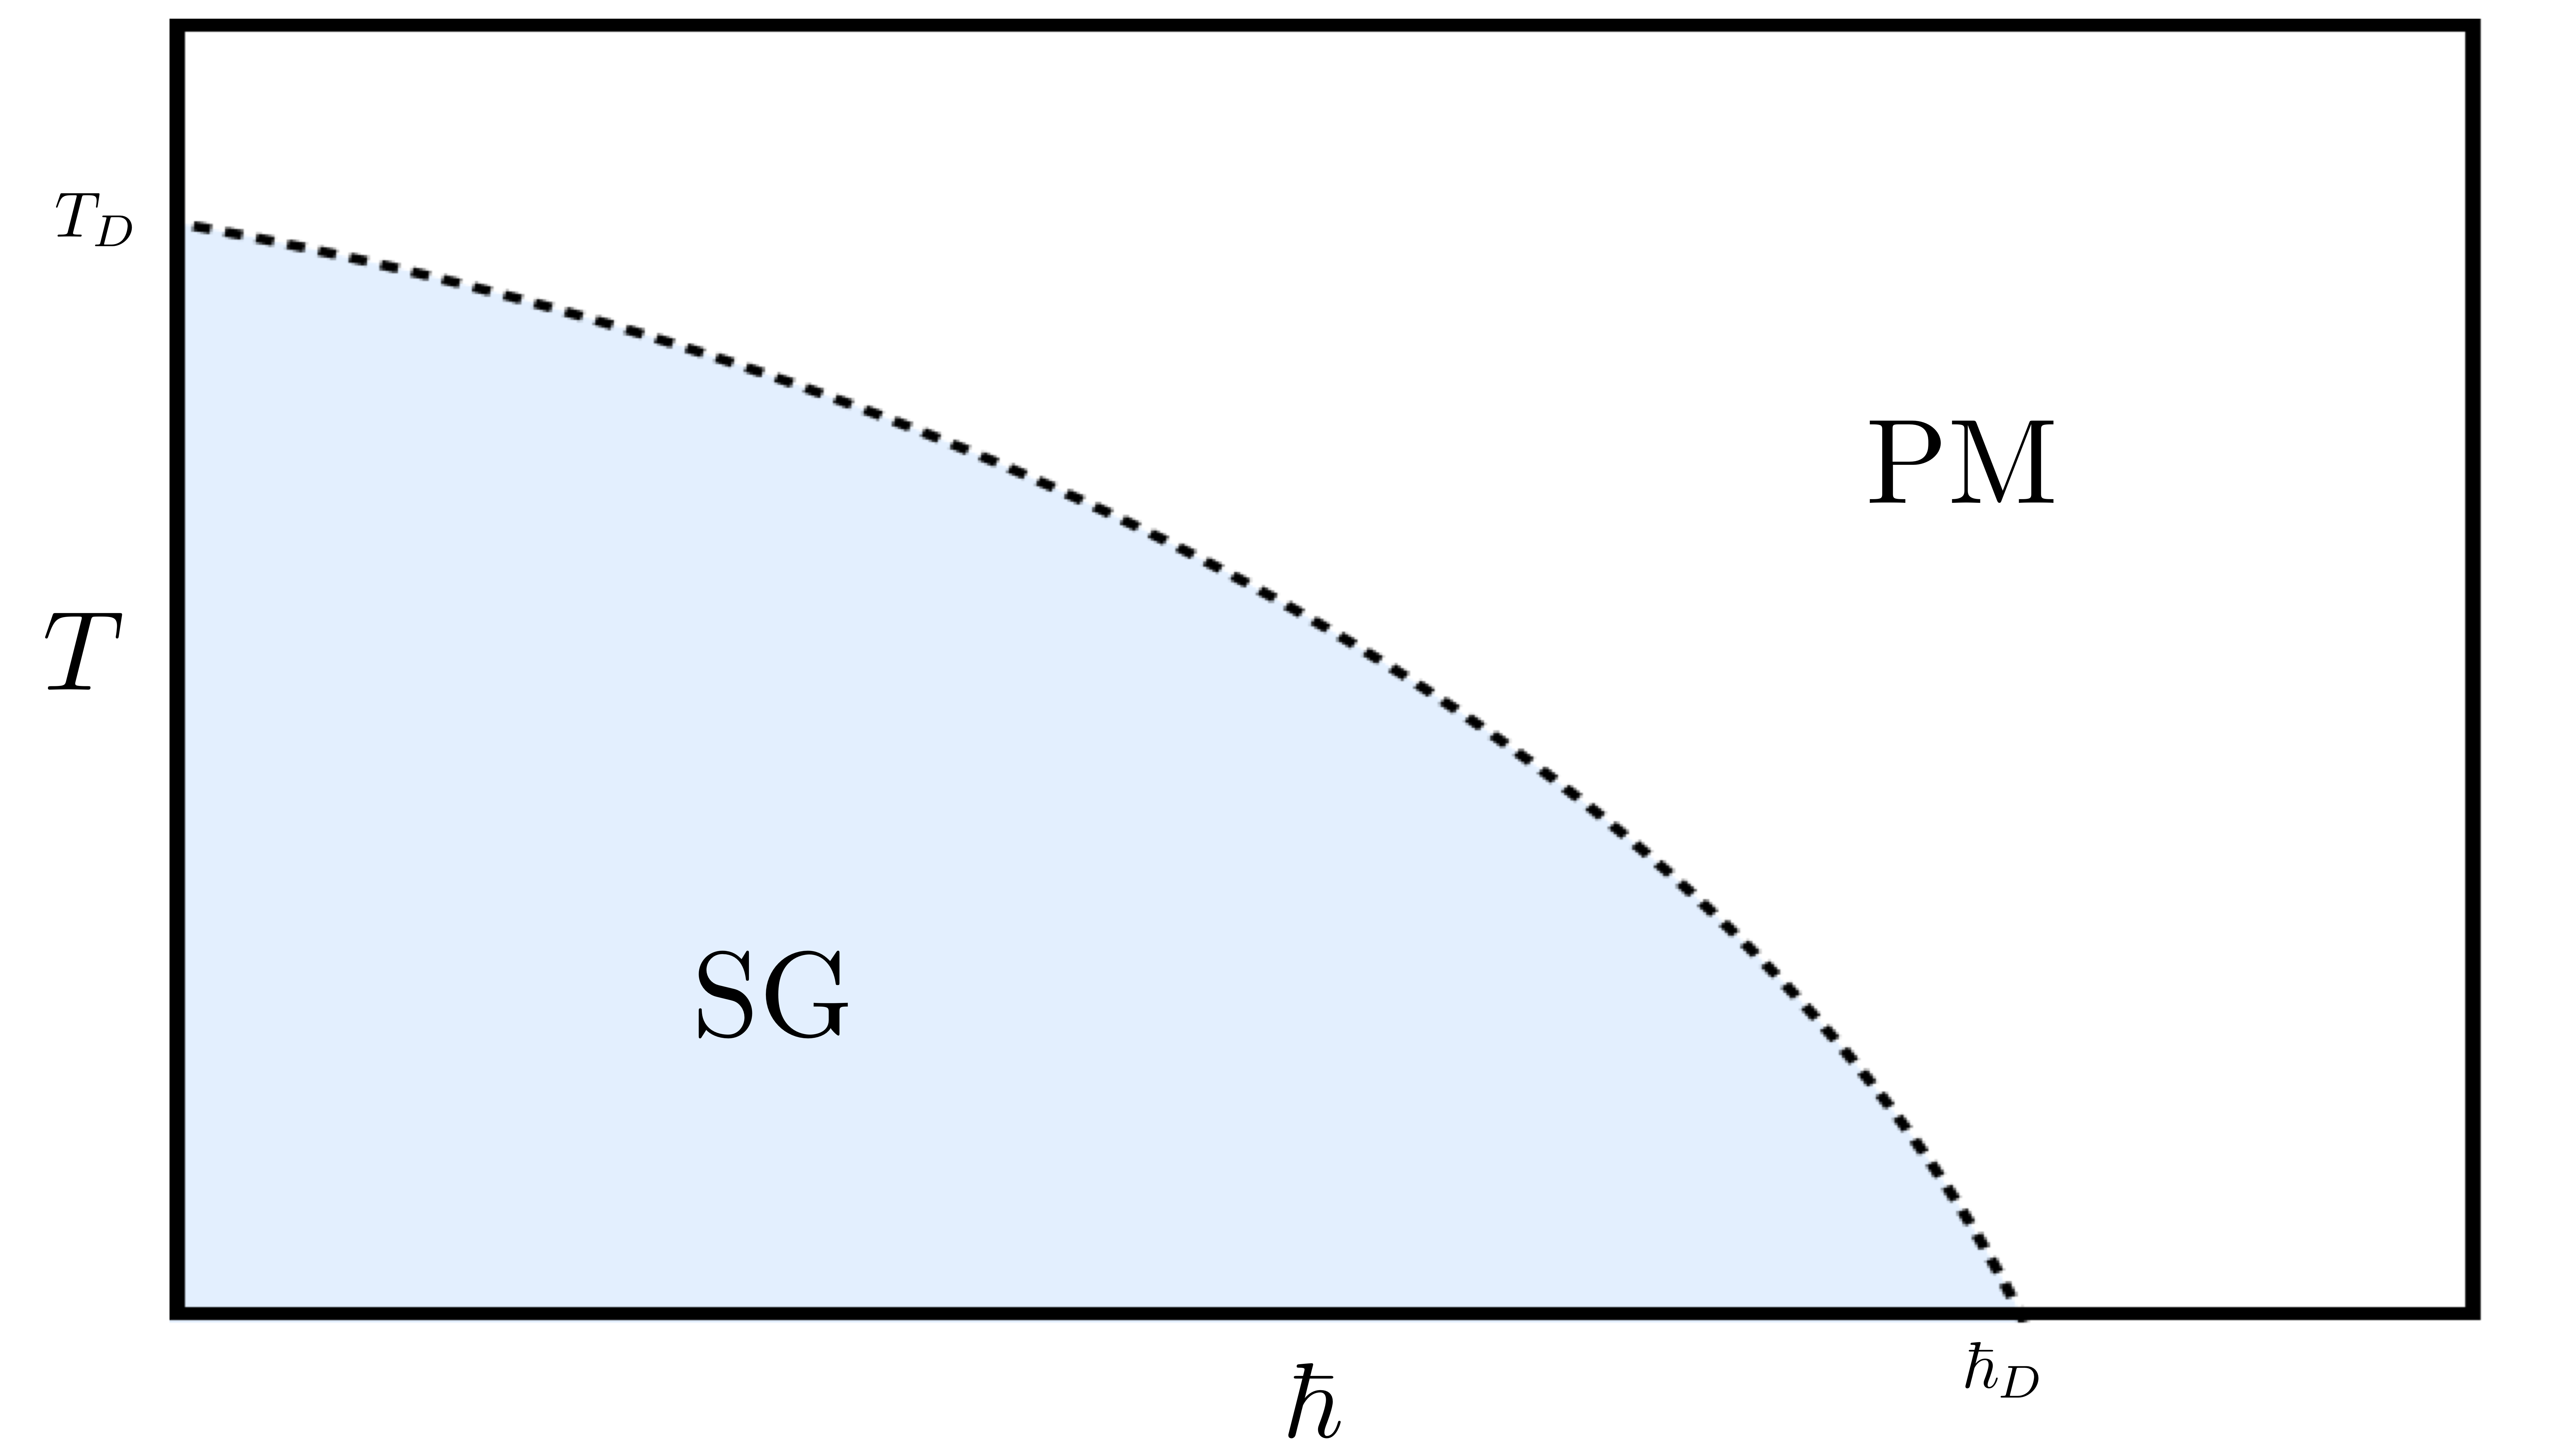 A phase diagram of the p-spin model, showing the spin glass phase (SG, in blue) that exists at low temperatures T and small values of quantum fluctuations.